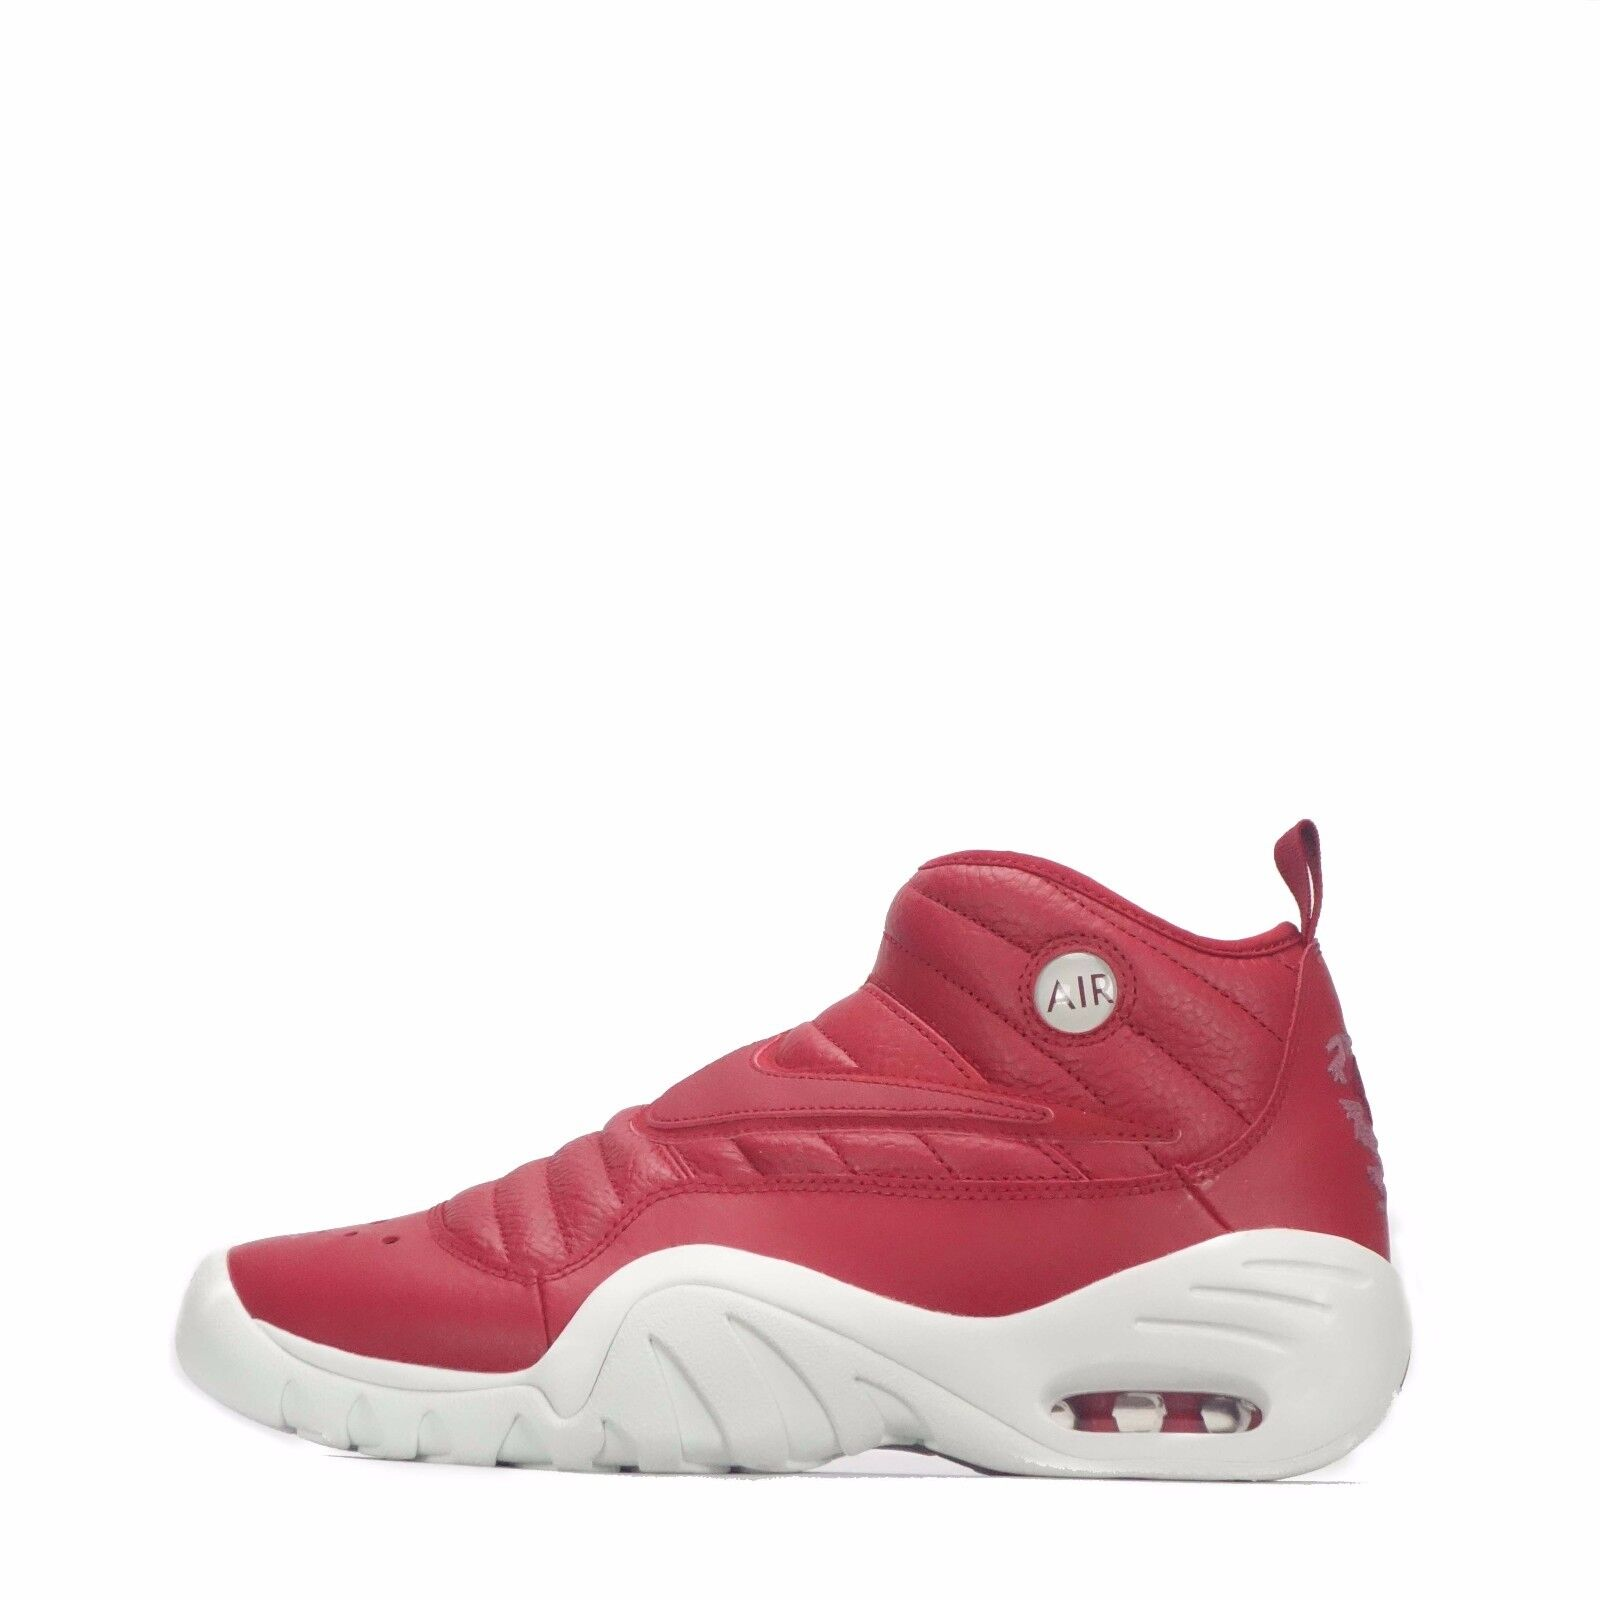 Nike Air Shake Ndestrukt Men's Shoes Gym Red/White